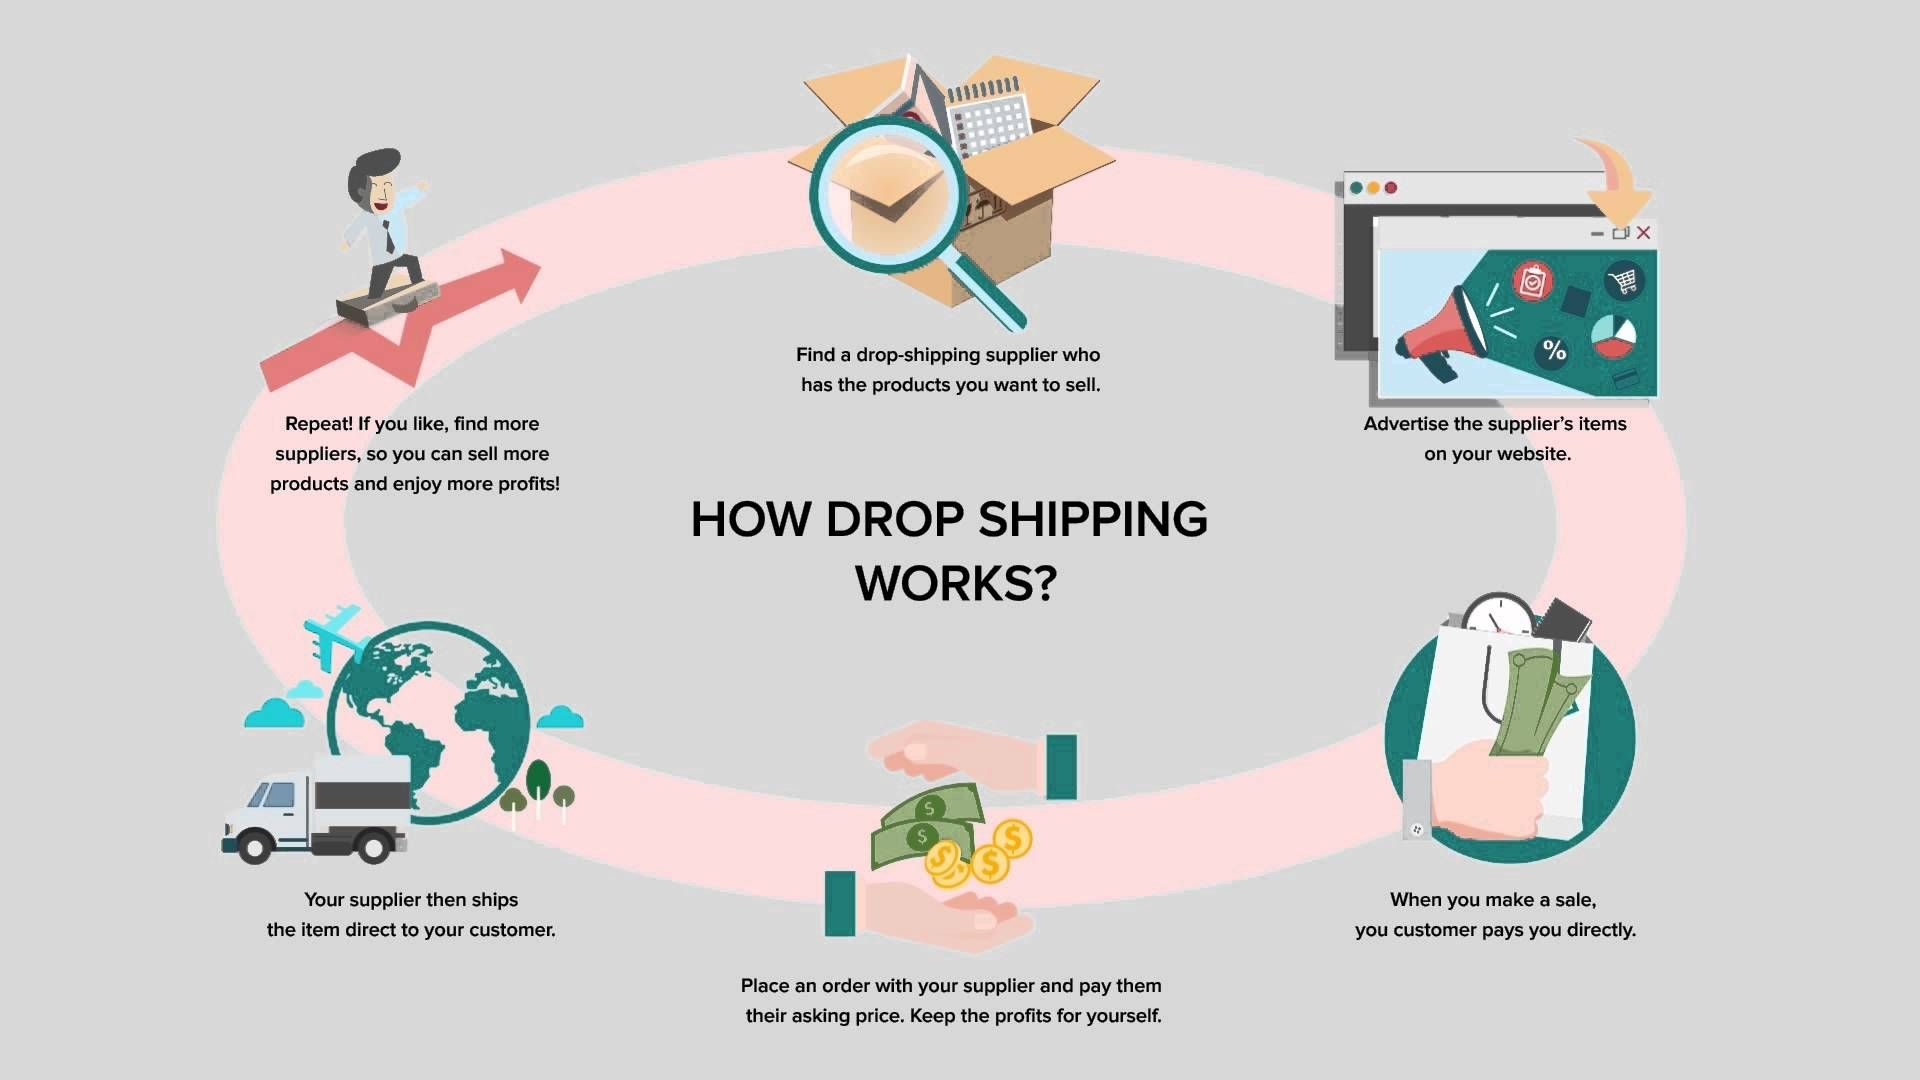 medium resolution of hi would you like to know that how to search dropshipping products on aliexpress then i will suggest you guys to check this guide that will help you for